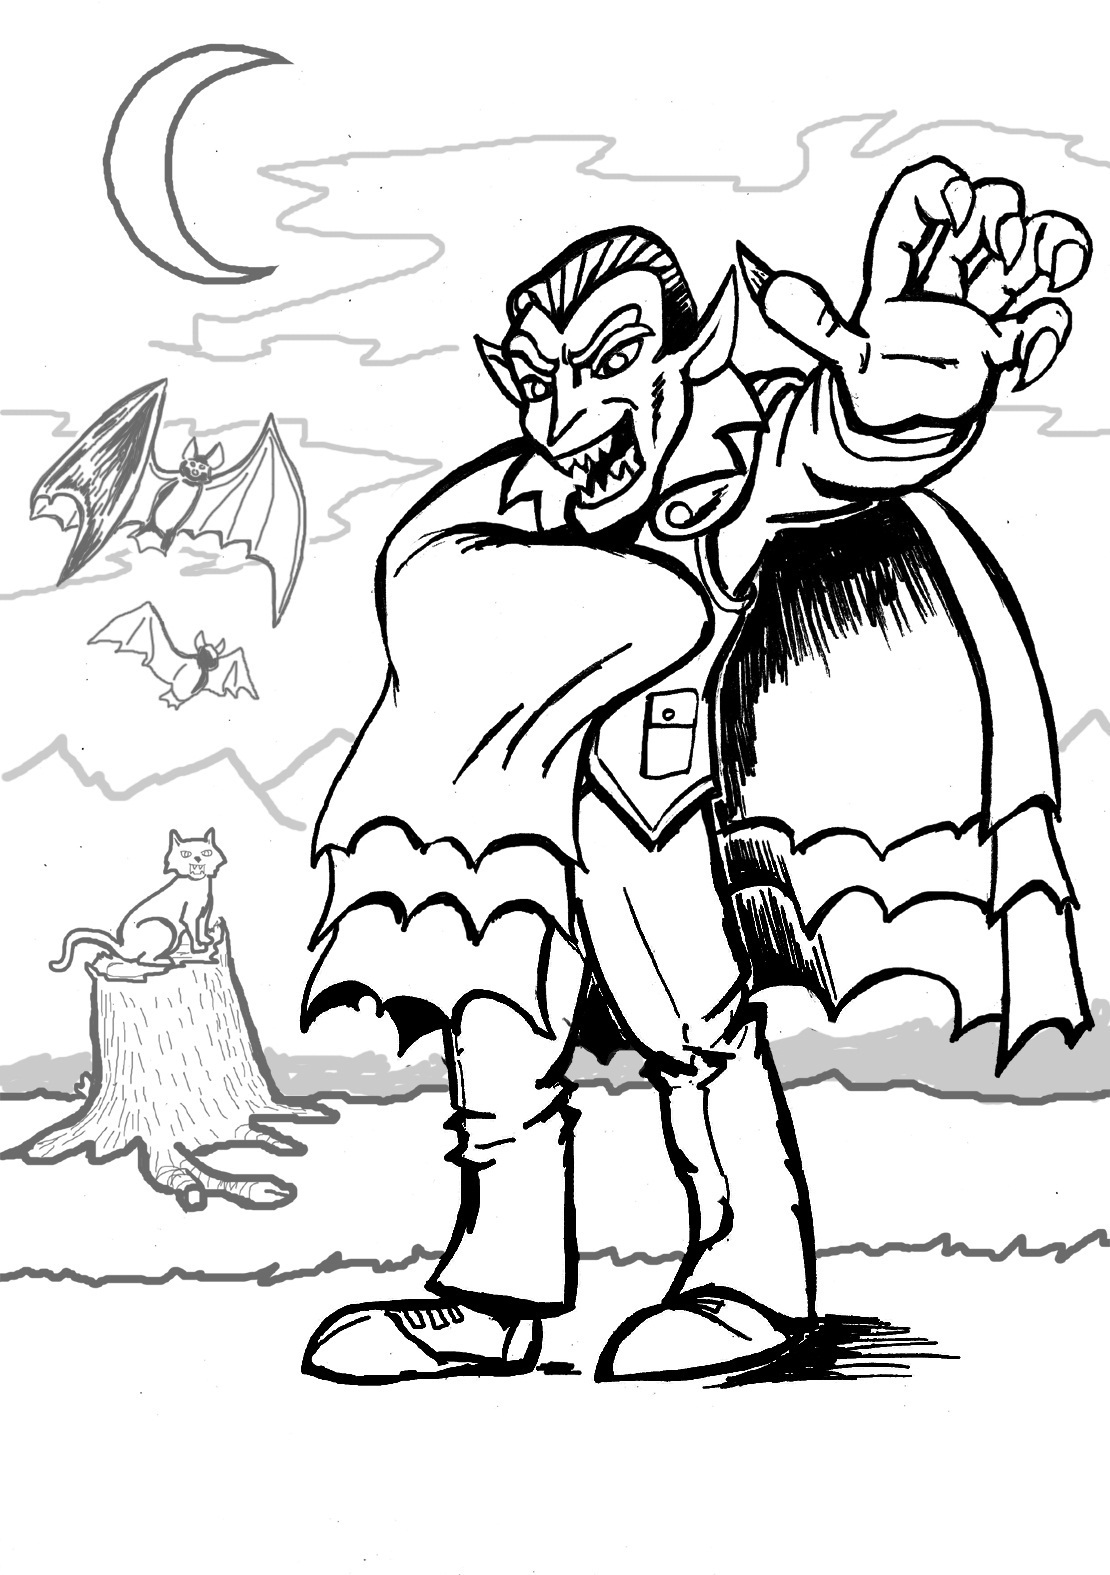 Free Printable Vampire Coloring Pages For Kids | printable coloring pages for kids.